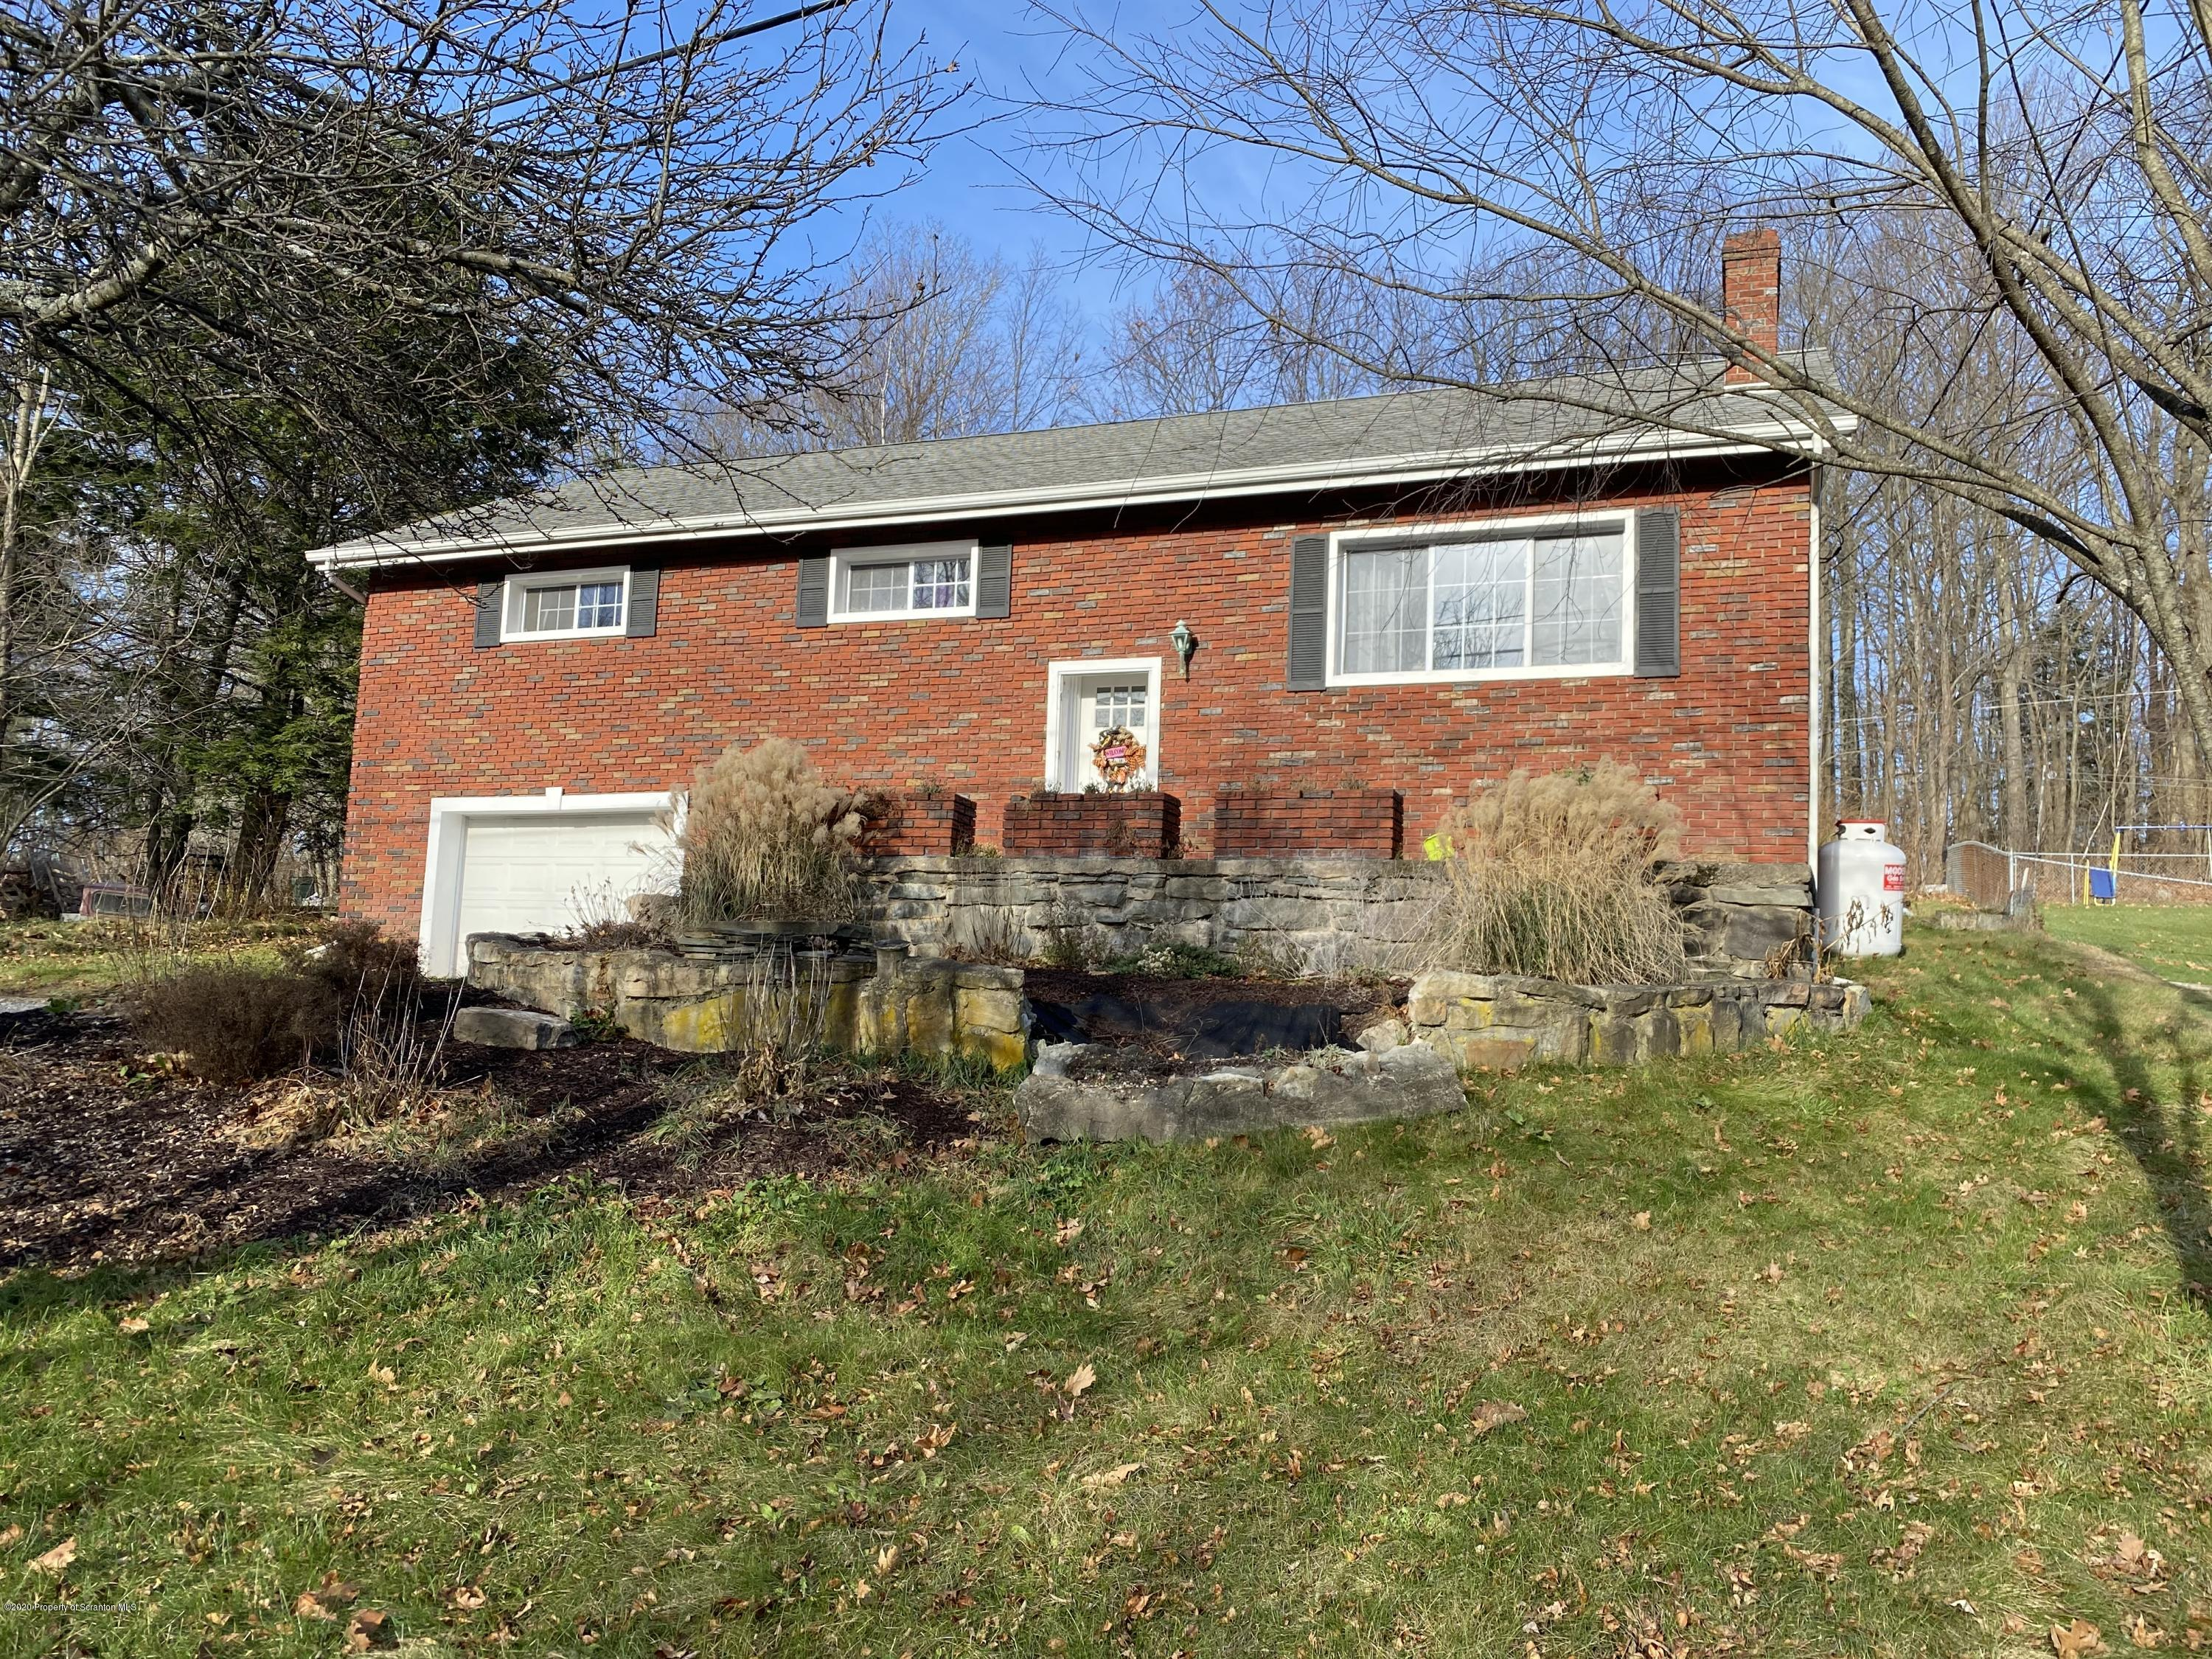 Mls 20 5006 4191 Hamlin Hwy Jefferson Twp Pa 18444